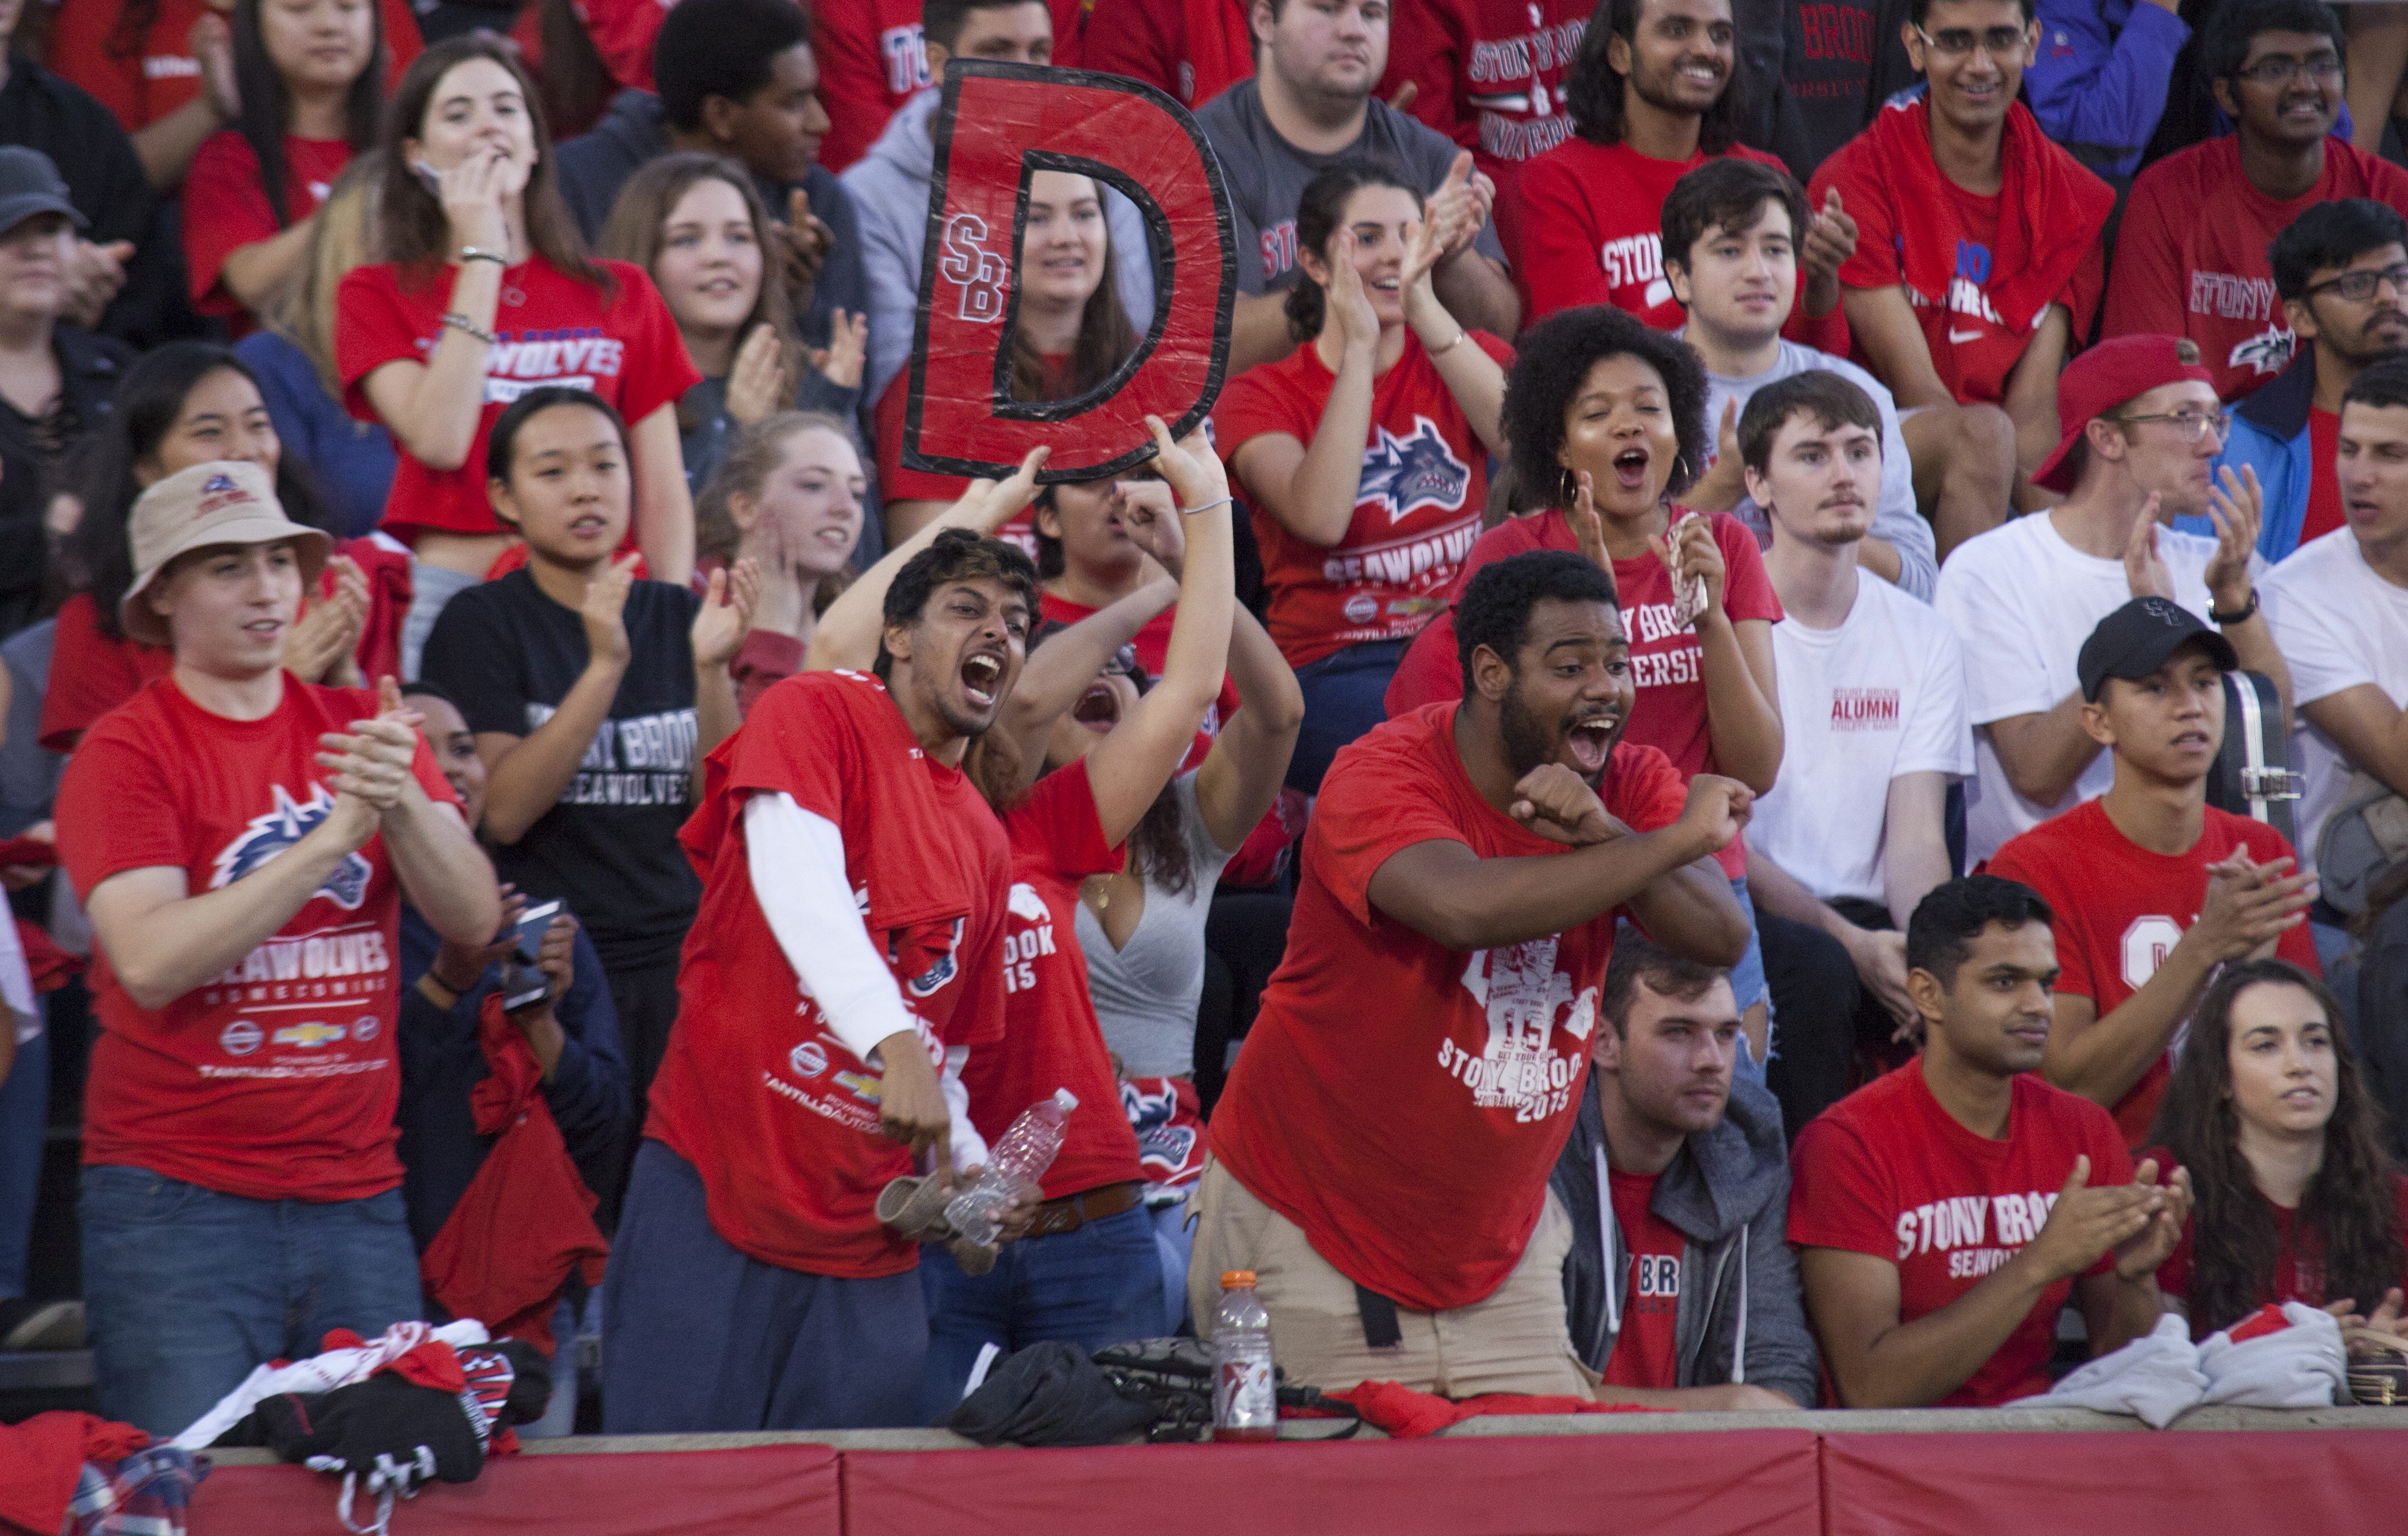 Fans cheer on the defense as the Seawolves keep the Wildcats from reaching the endzone. <em>ARACELY JIMENEZ/THE STATESMAN</em>